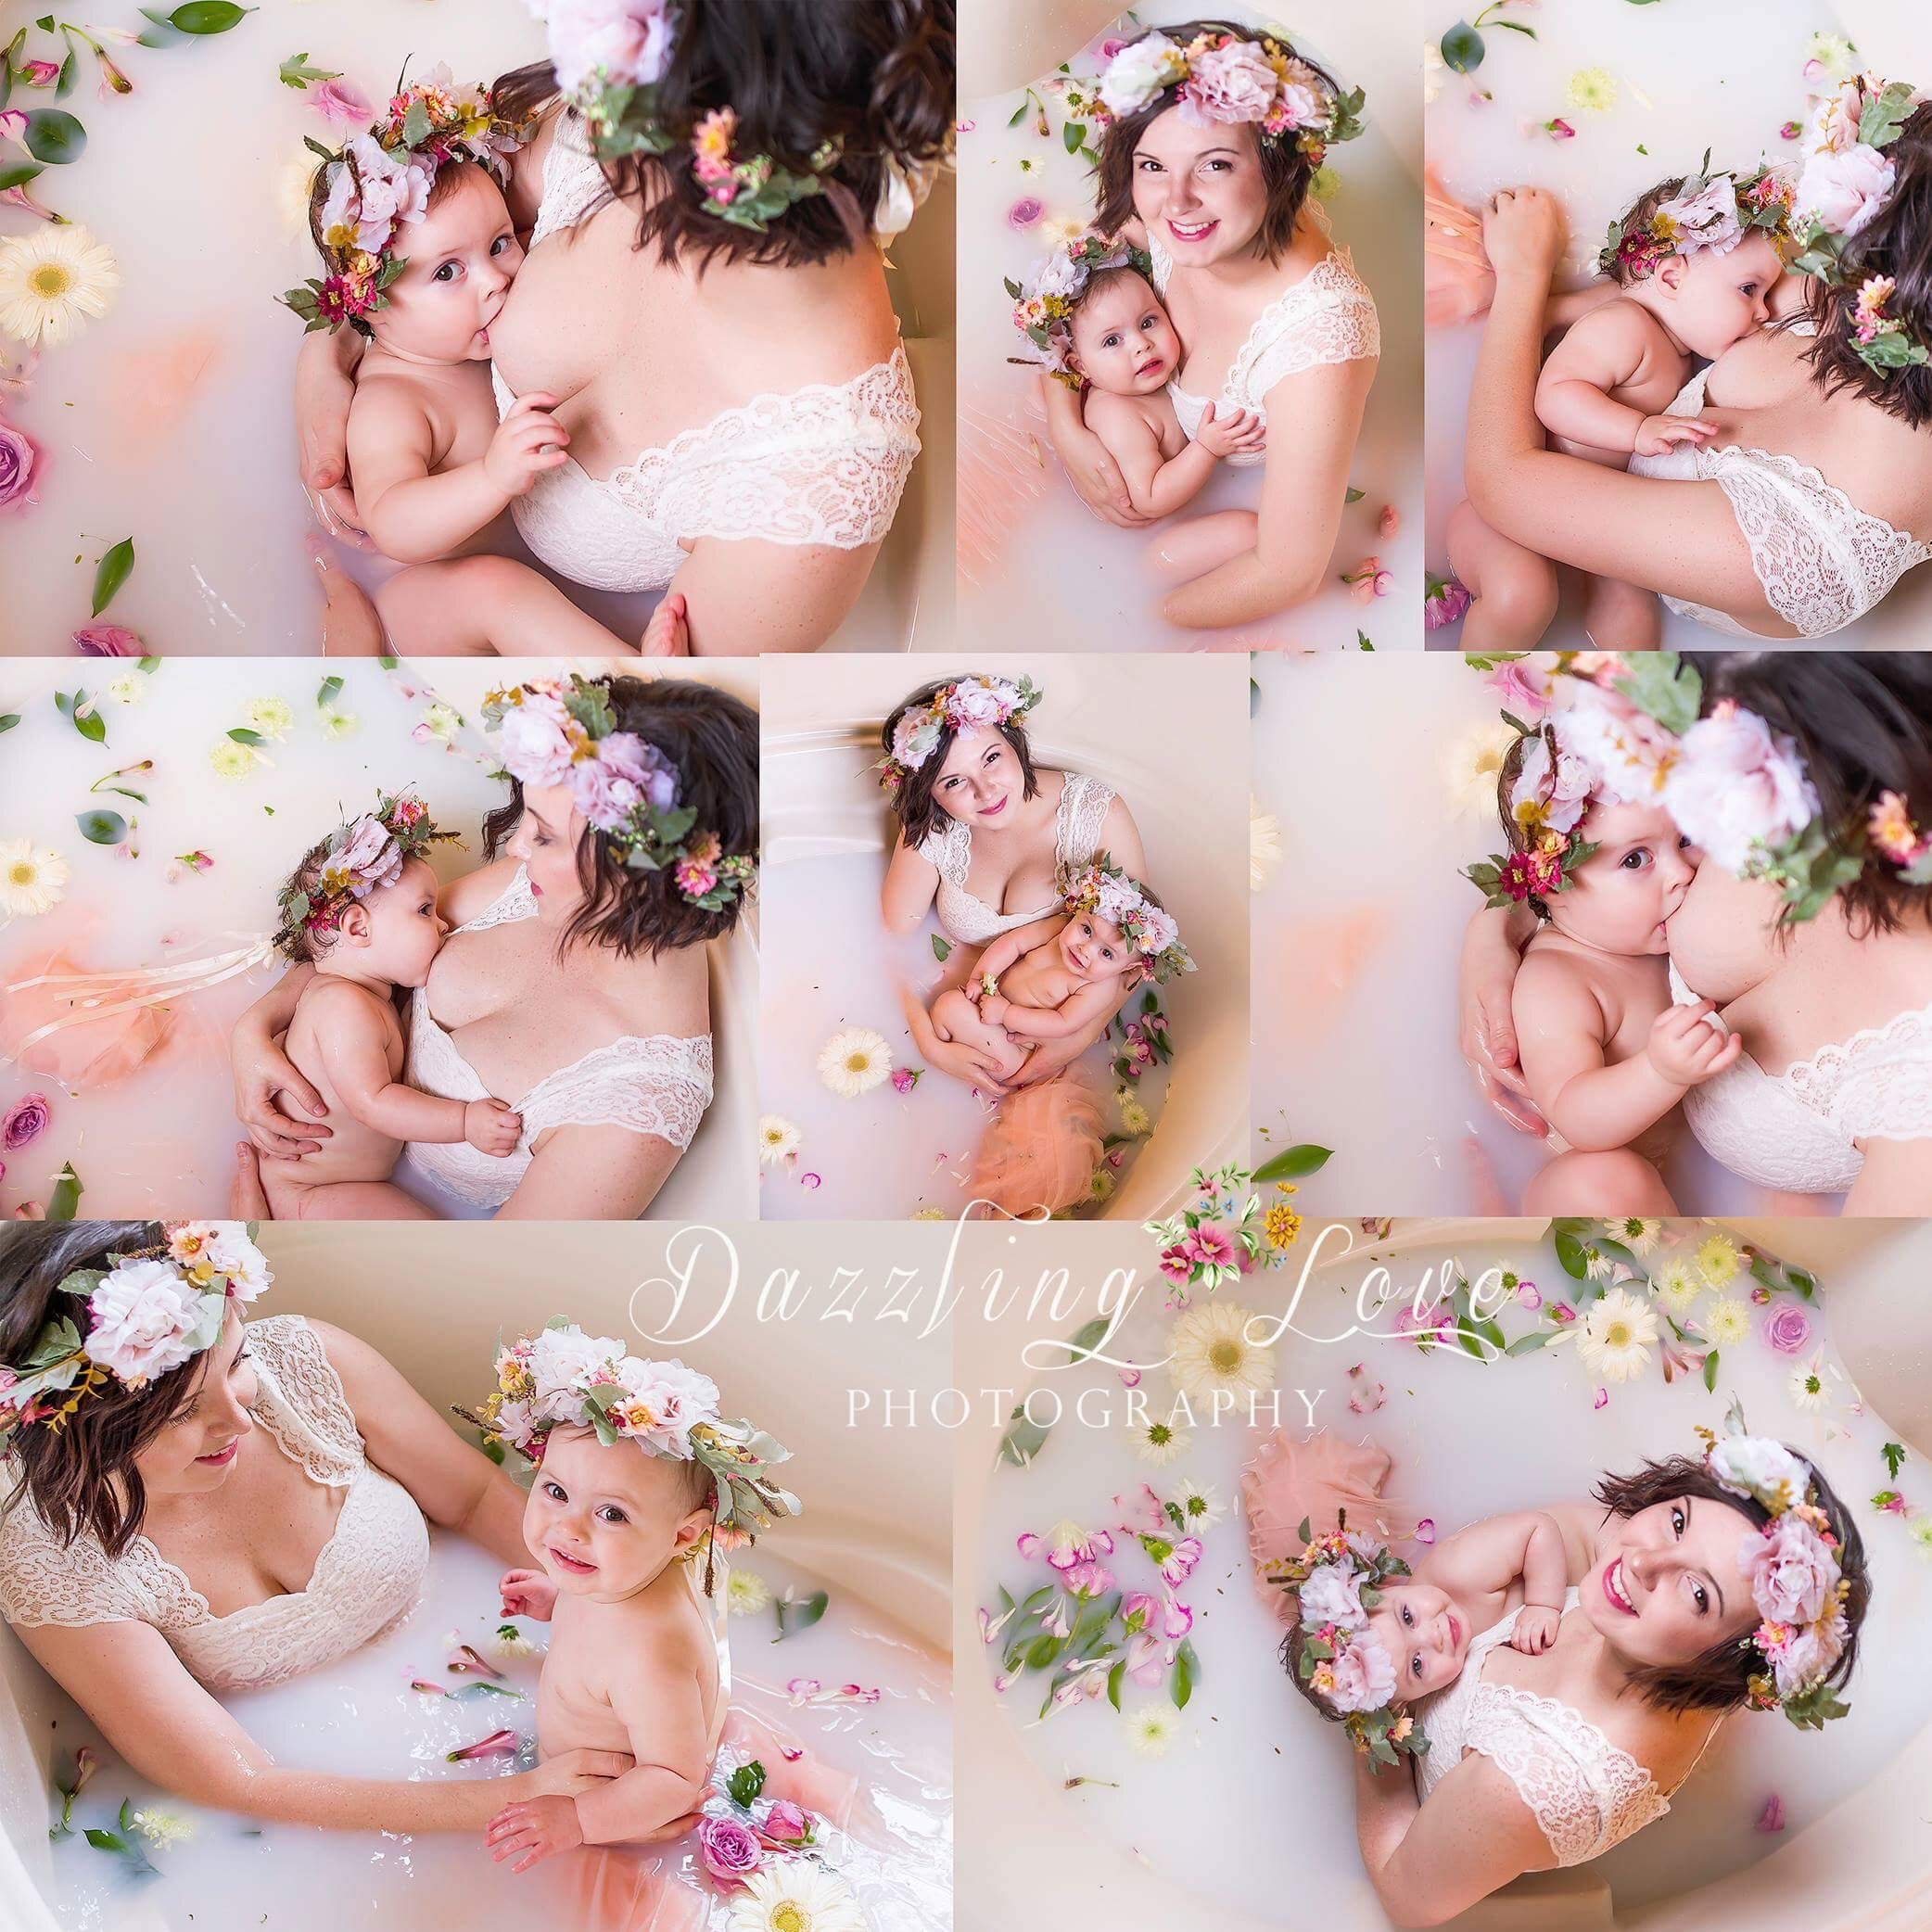 Nursing Milk Bath Photography #milkbath